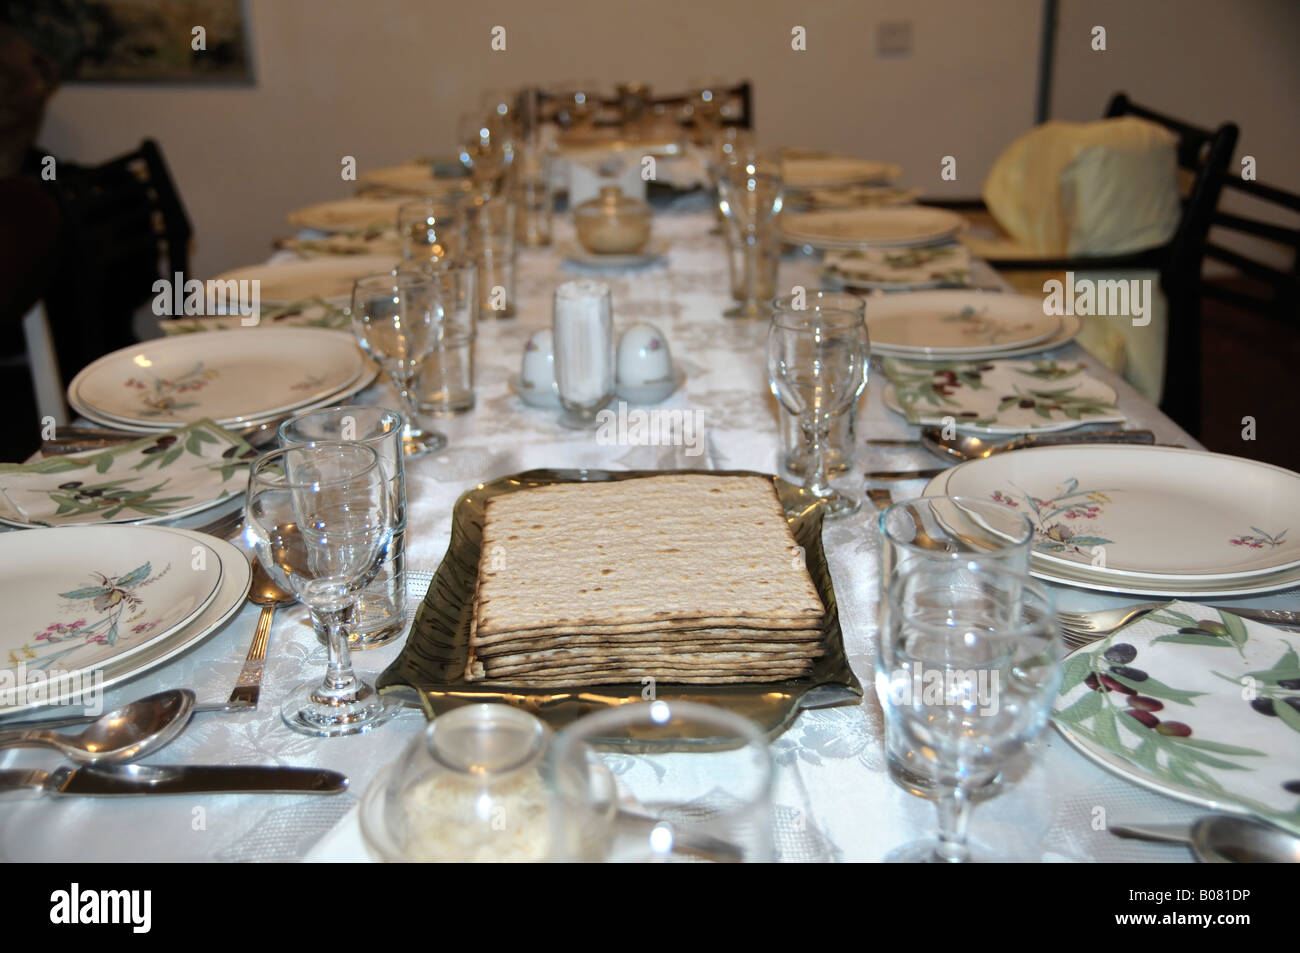 Table set for a Jewish Festive meal on Passover - Stock Image